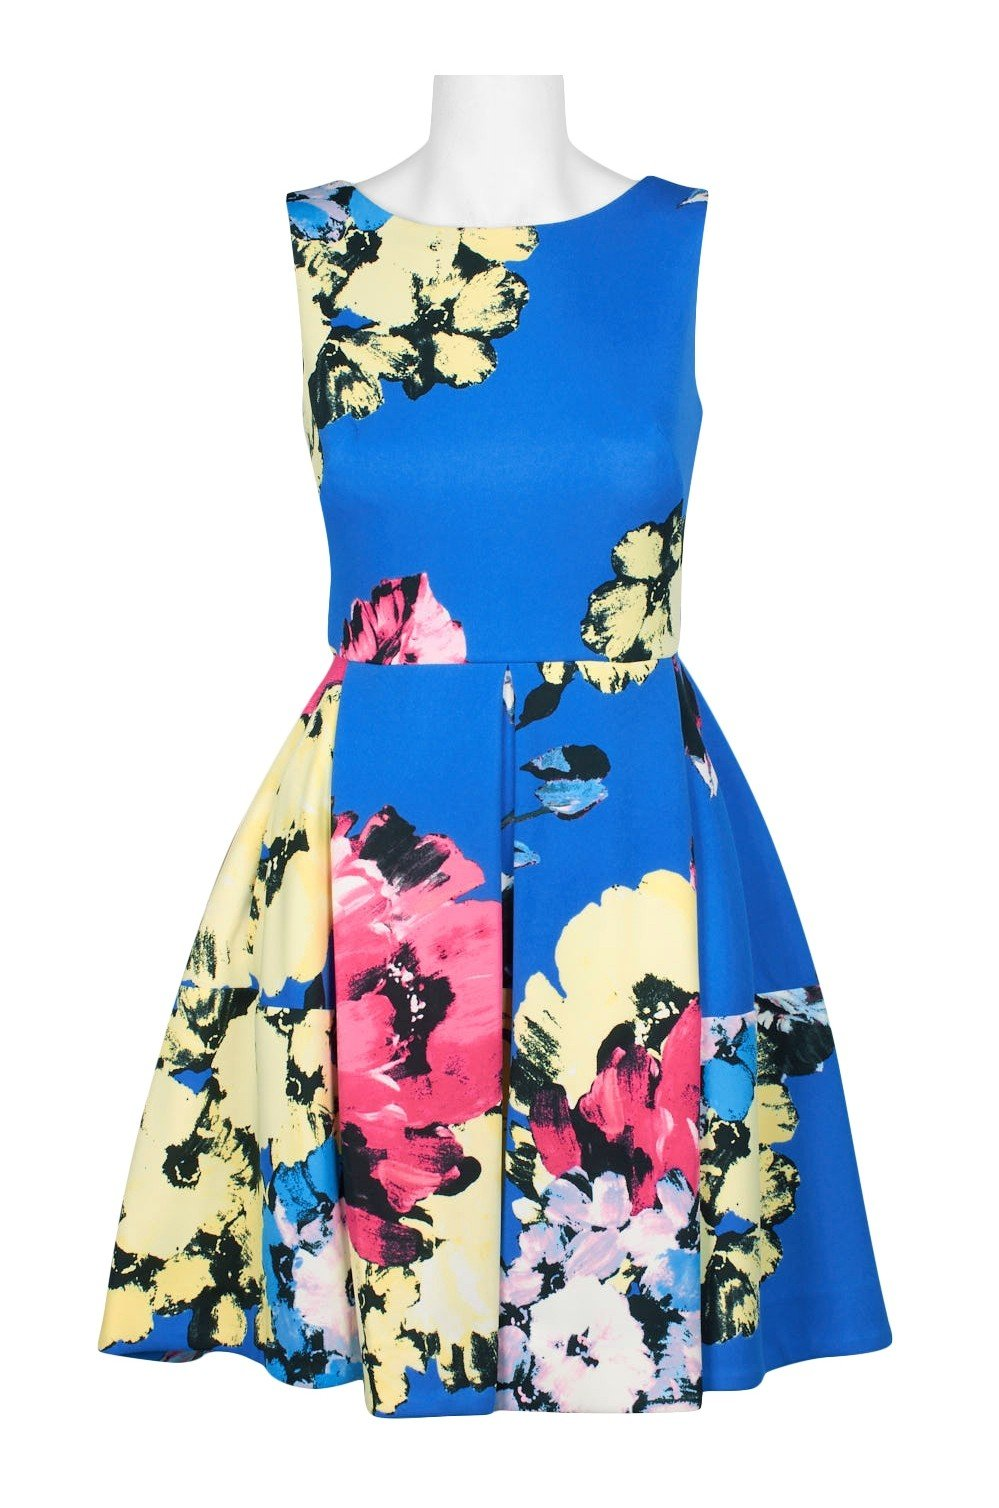 Taylor - 1307M Sleeveless Floral Print Fit and Flare Short Scuba Dress In Blue and Floral